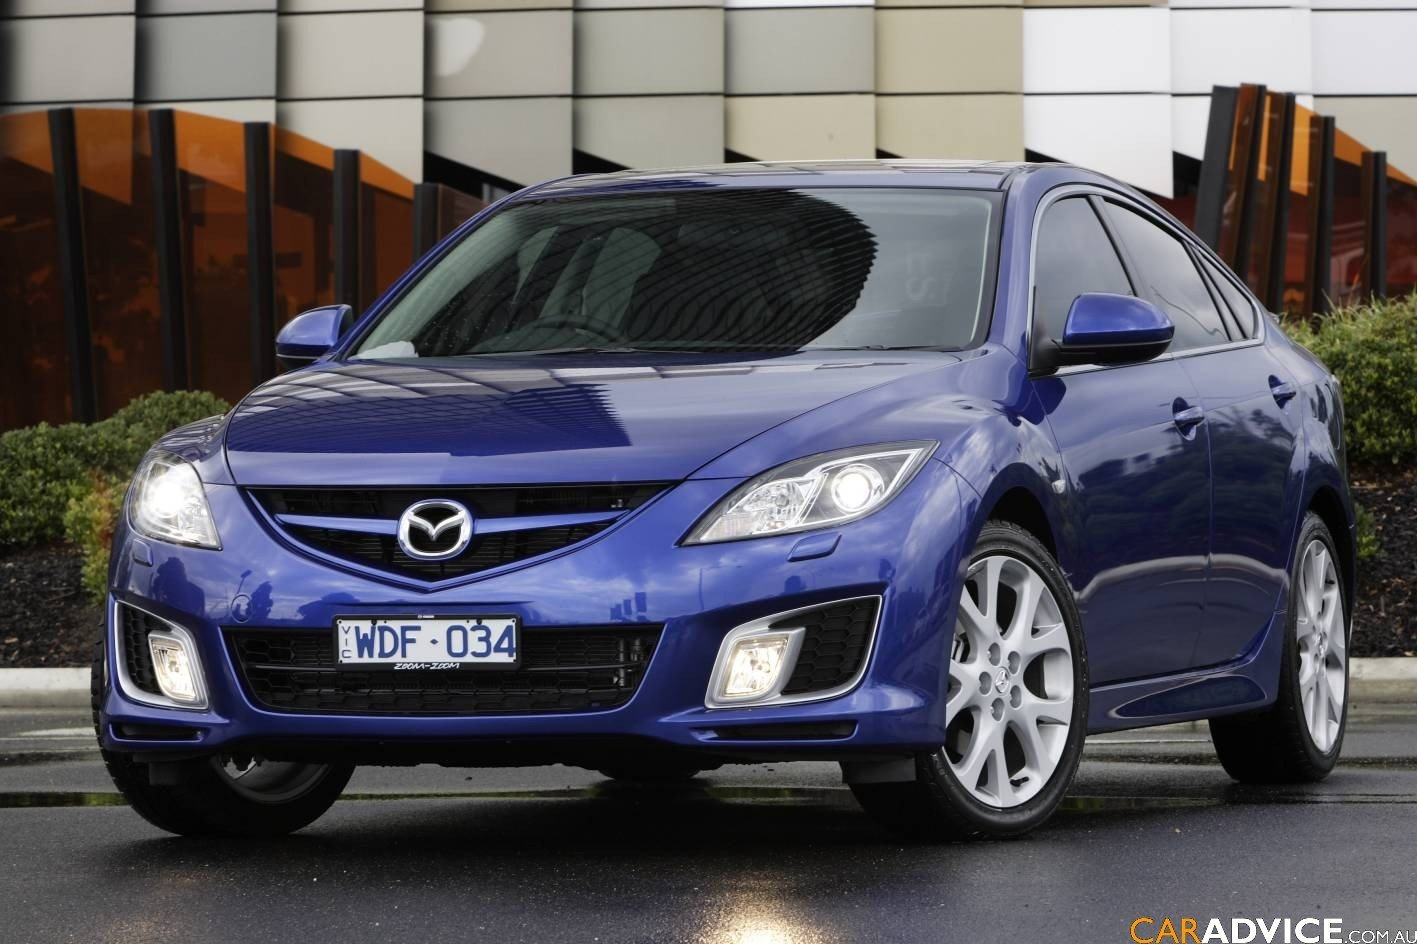 Latest Luxury Cars Galleries Mazda 6 The Best Luxury Cars Free Download